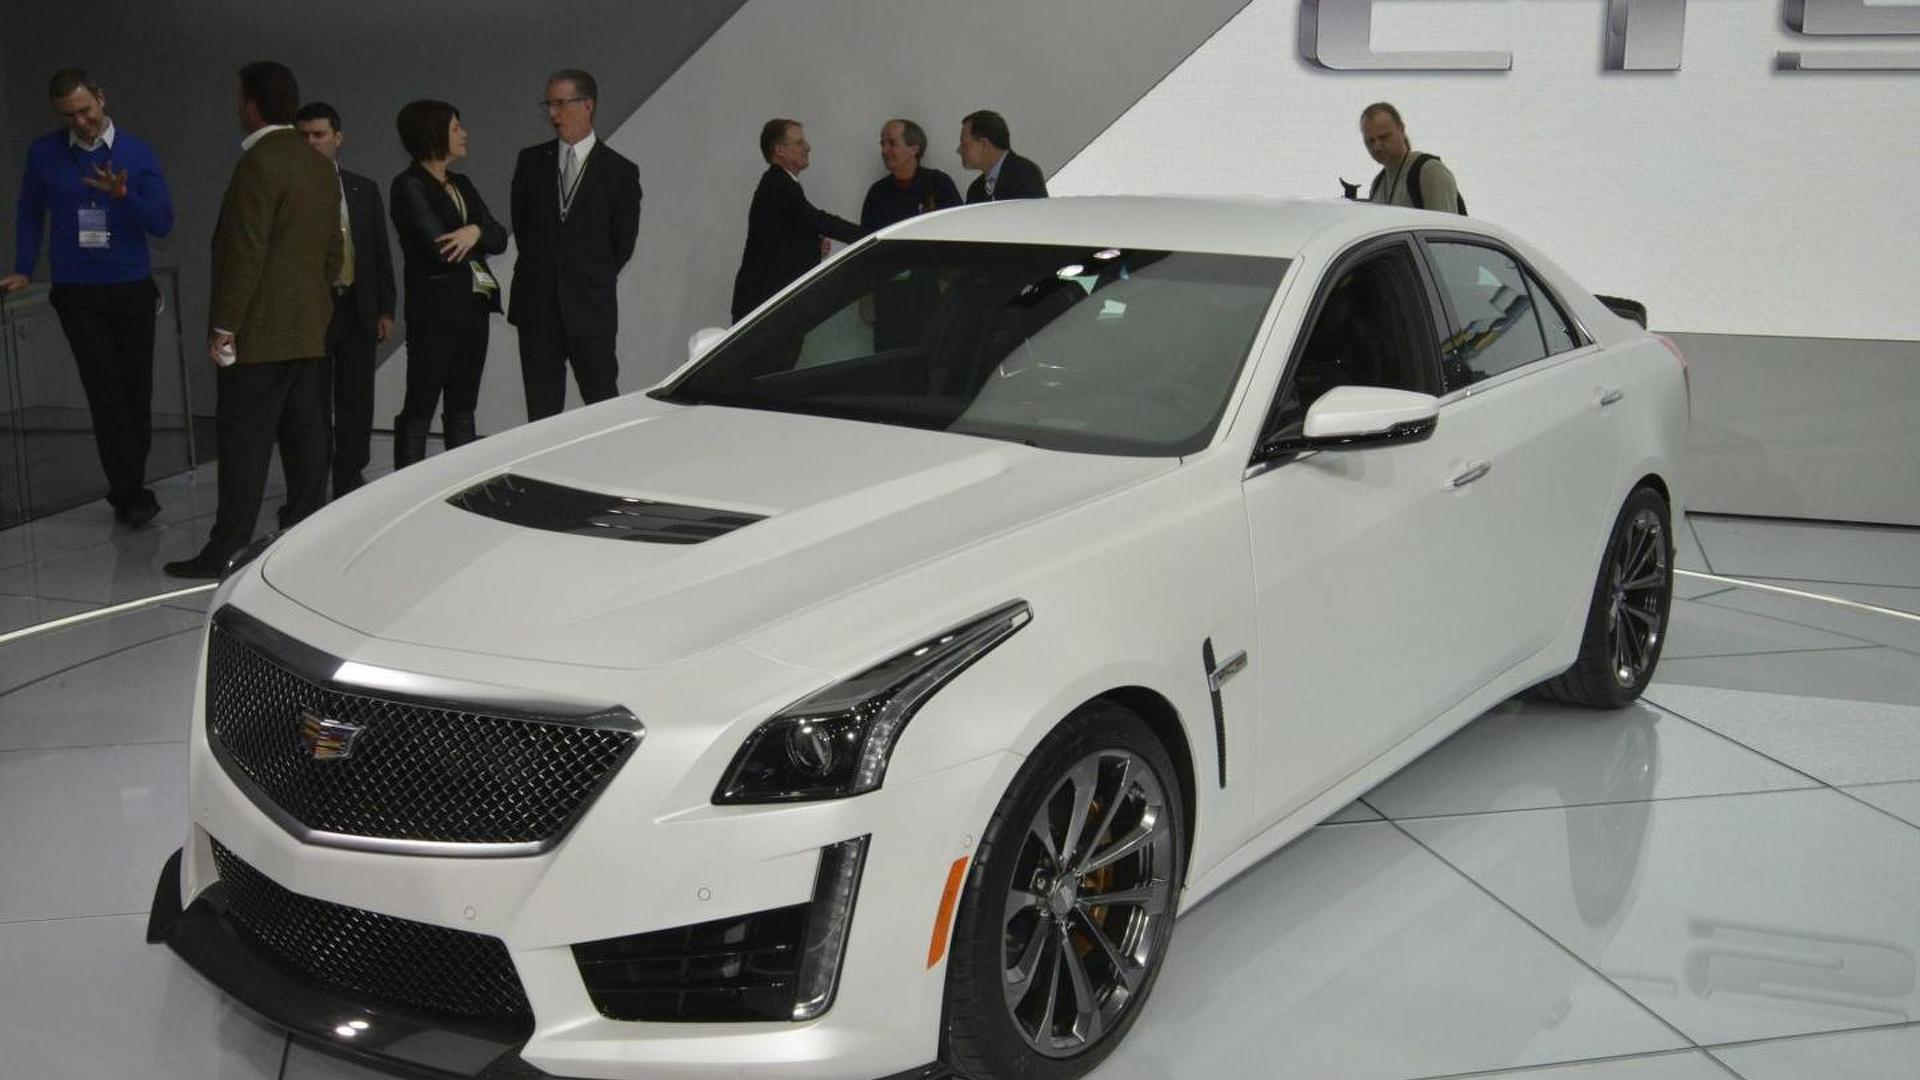 2016 Cadillac Cts V Arrives In Detroit With 640 Bhp